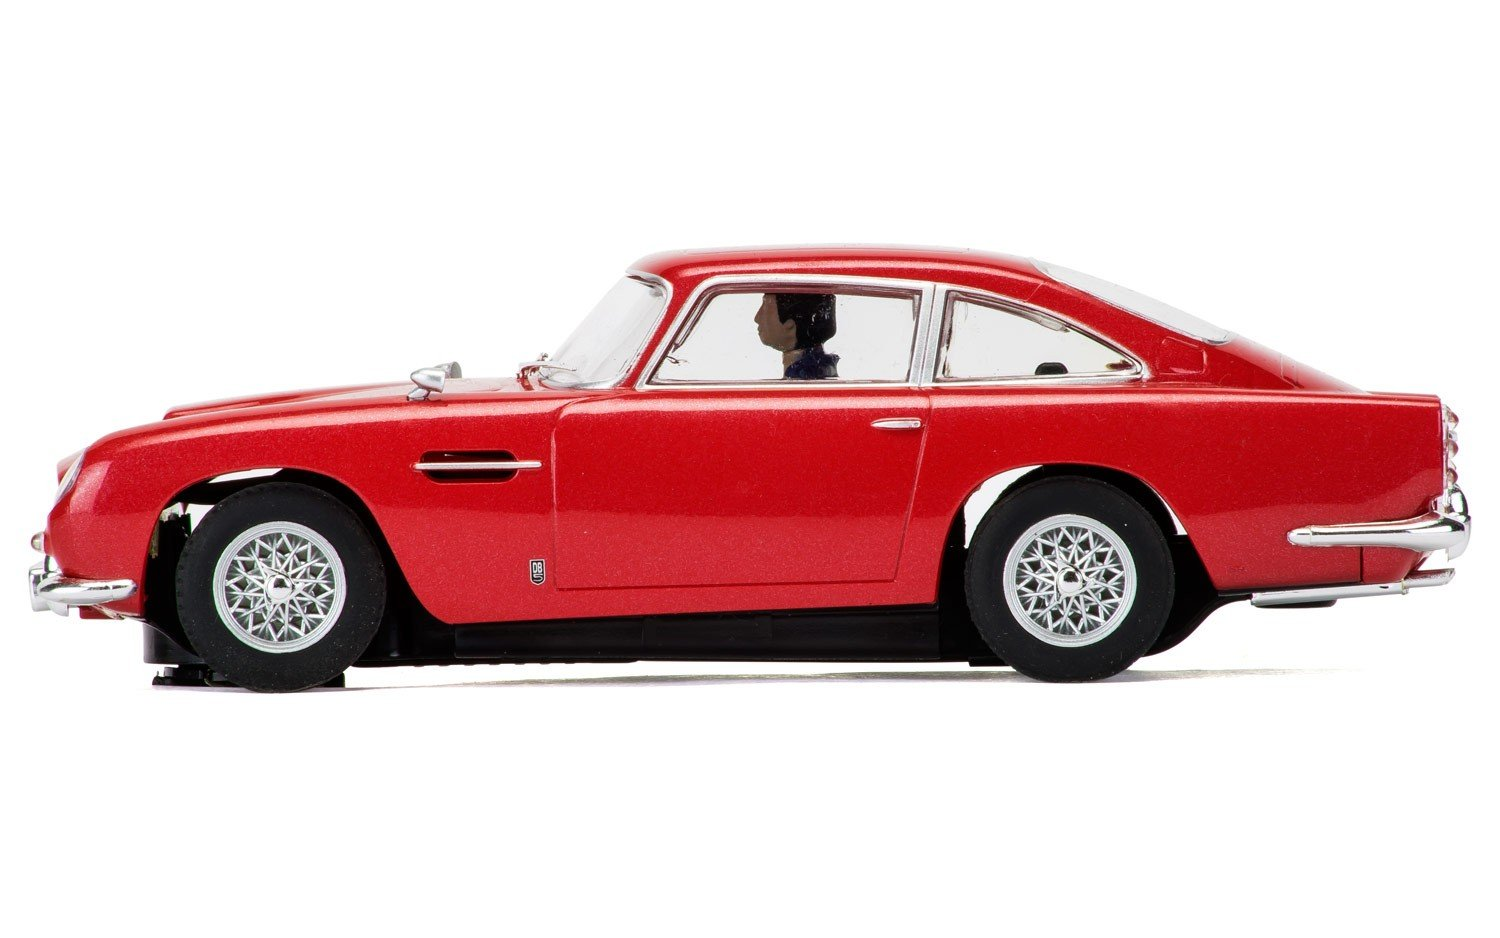 Scalextric C3722 Aston Martin DB5 Red Slot Car (1:32 Scale)